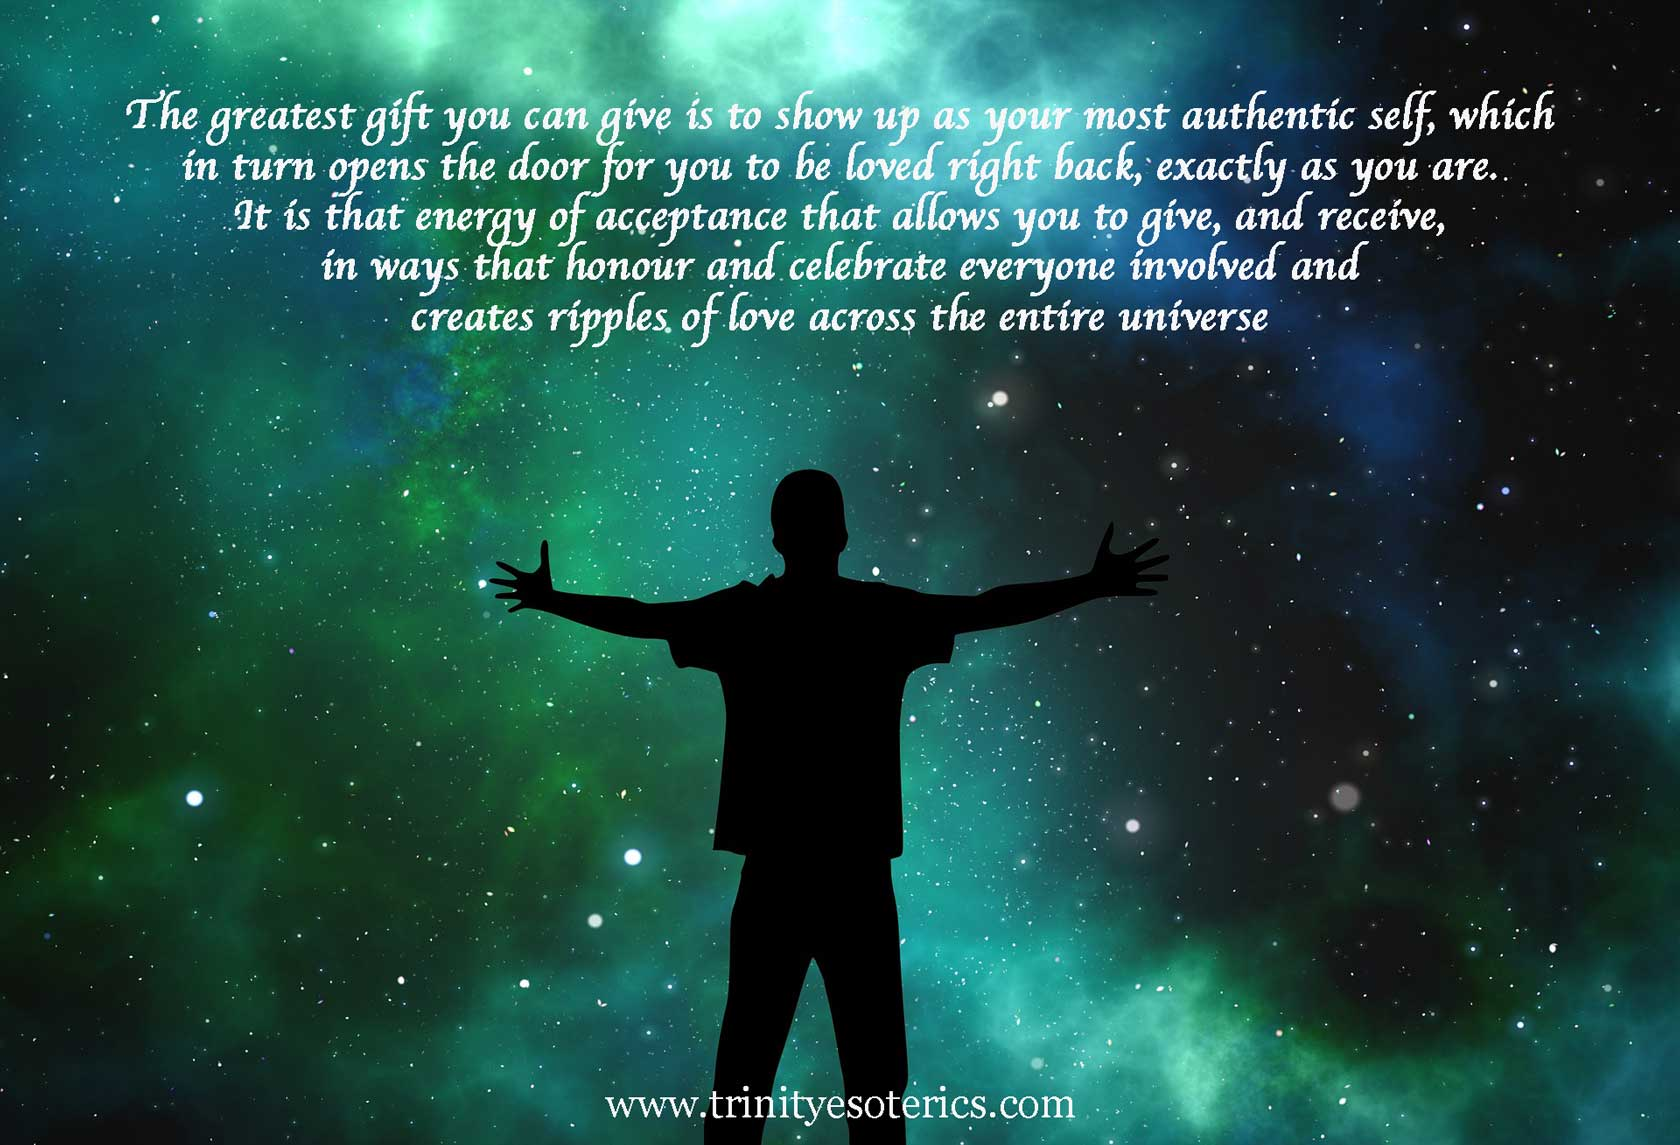 man giving/receiving from universe trinity esoterics